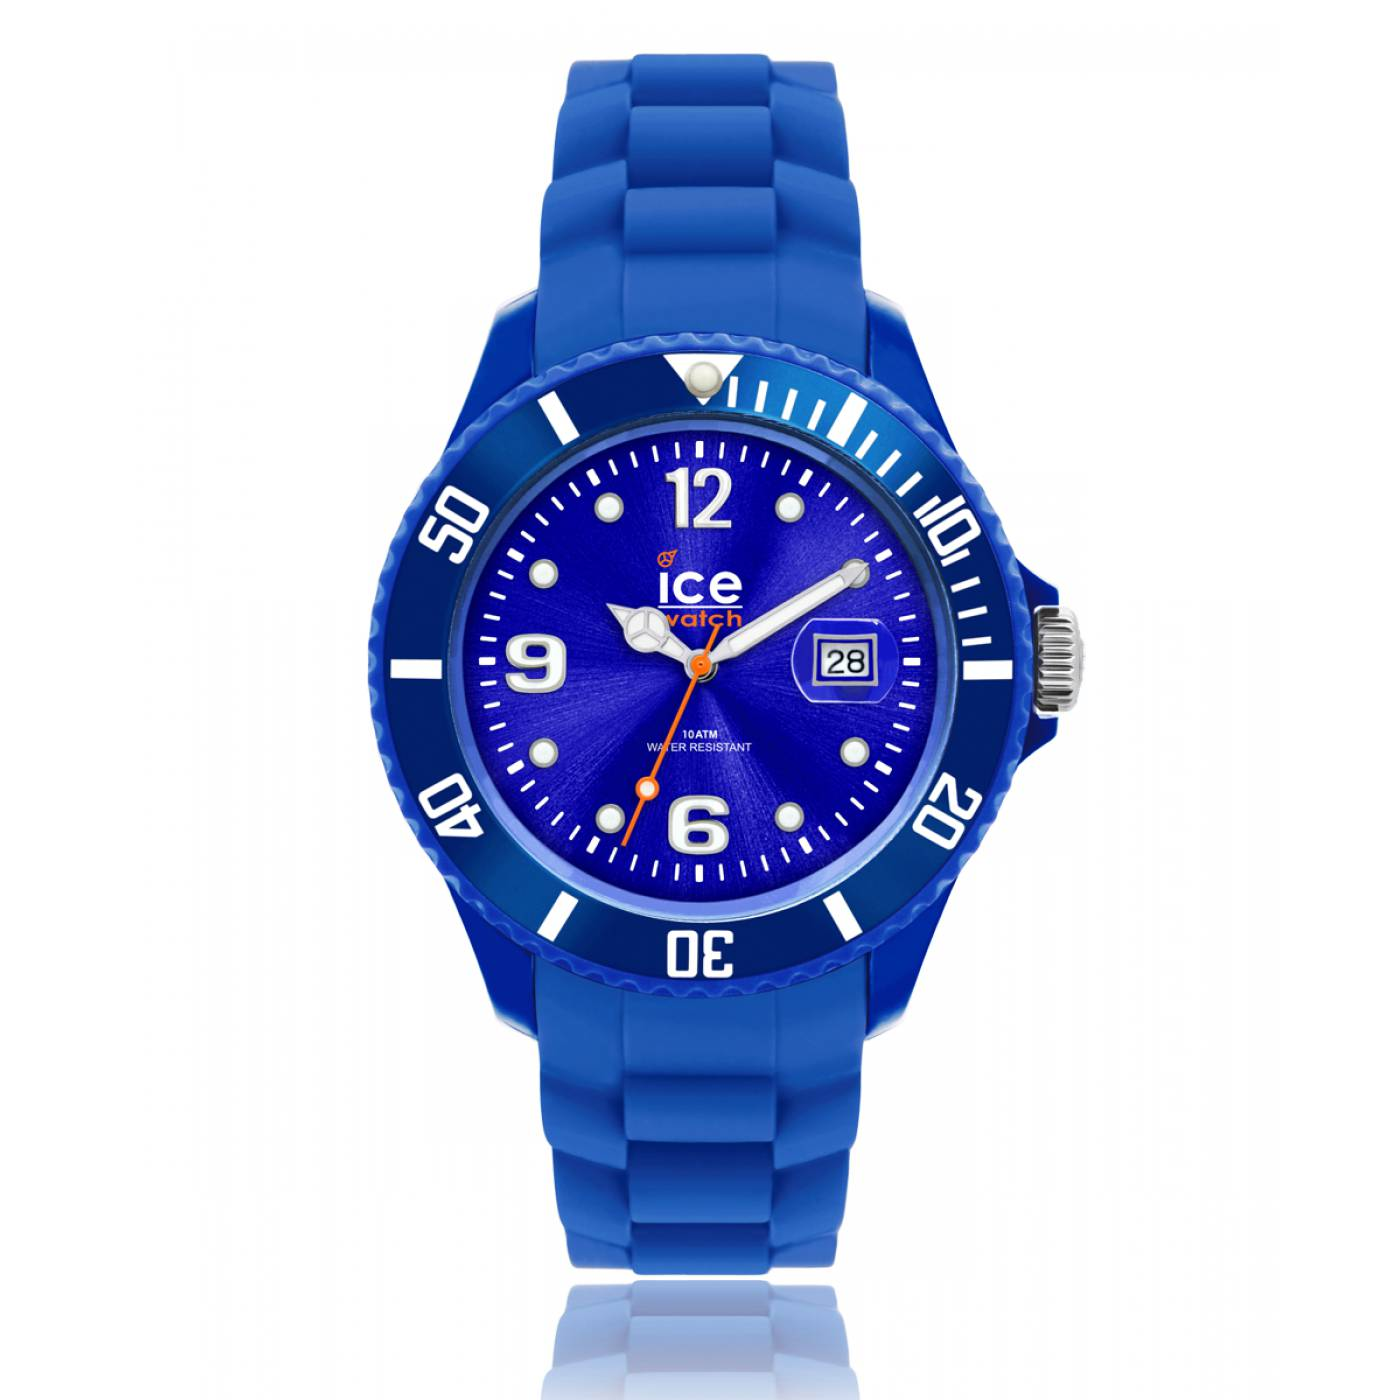 montre homme femme ice forever silicone bleu ice watch. Black Bedroom Furniture Sets. Home Design Ideas